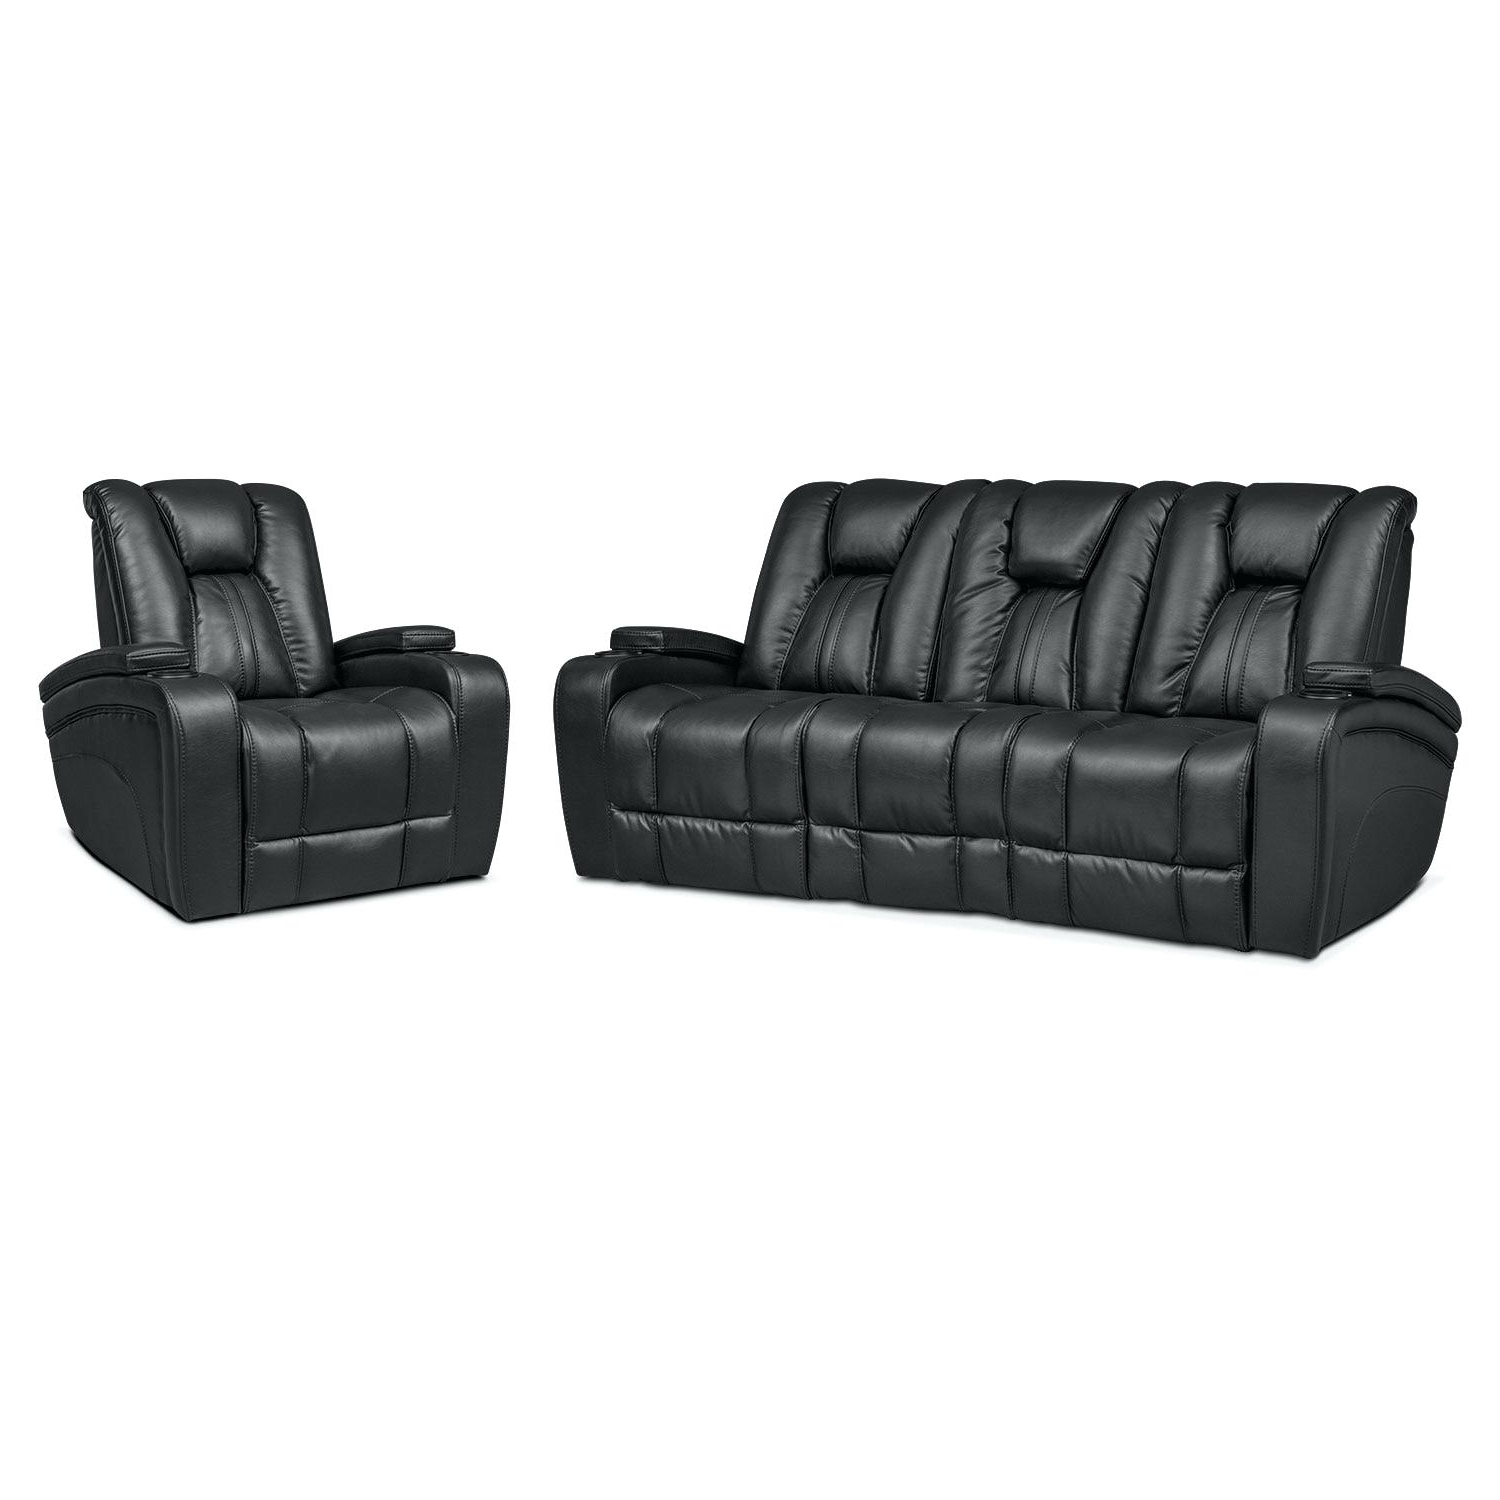 Sectional Sofas At Amazon Throughout Current Sofa : Amazon Reclining Chairs Single Seat Sofa Recliner Chairs (View 19 of 20)